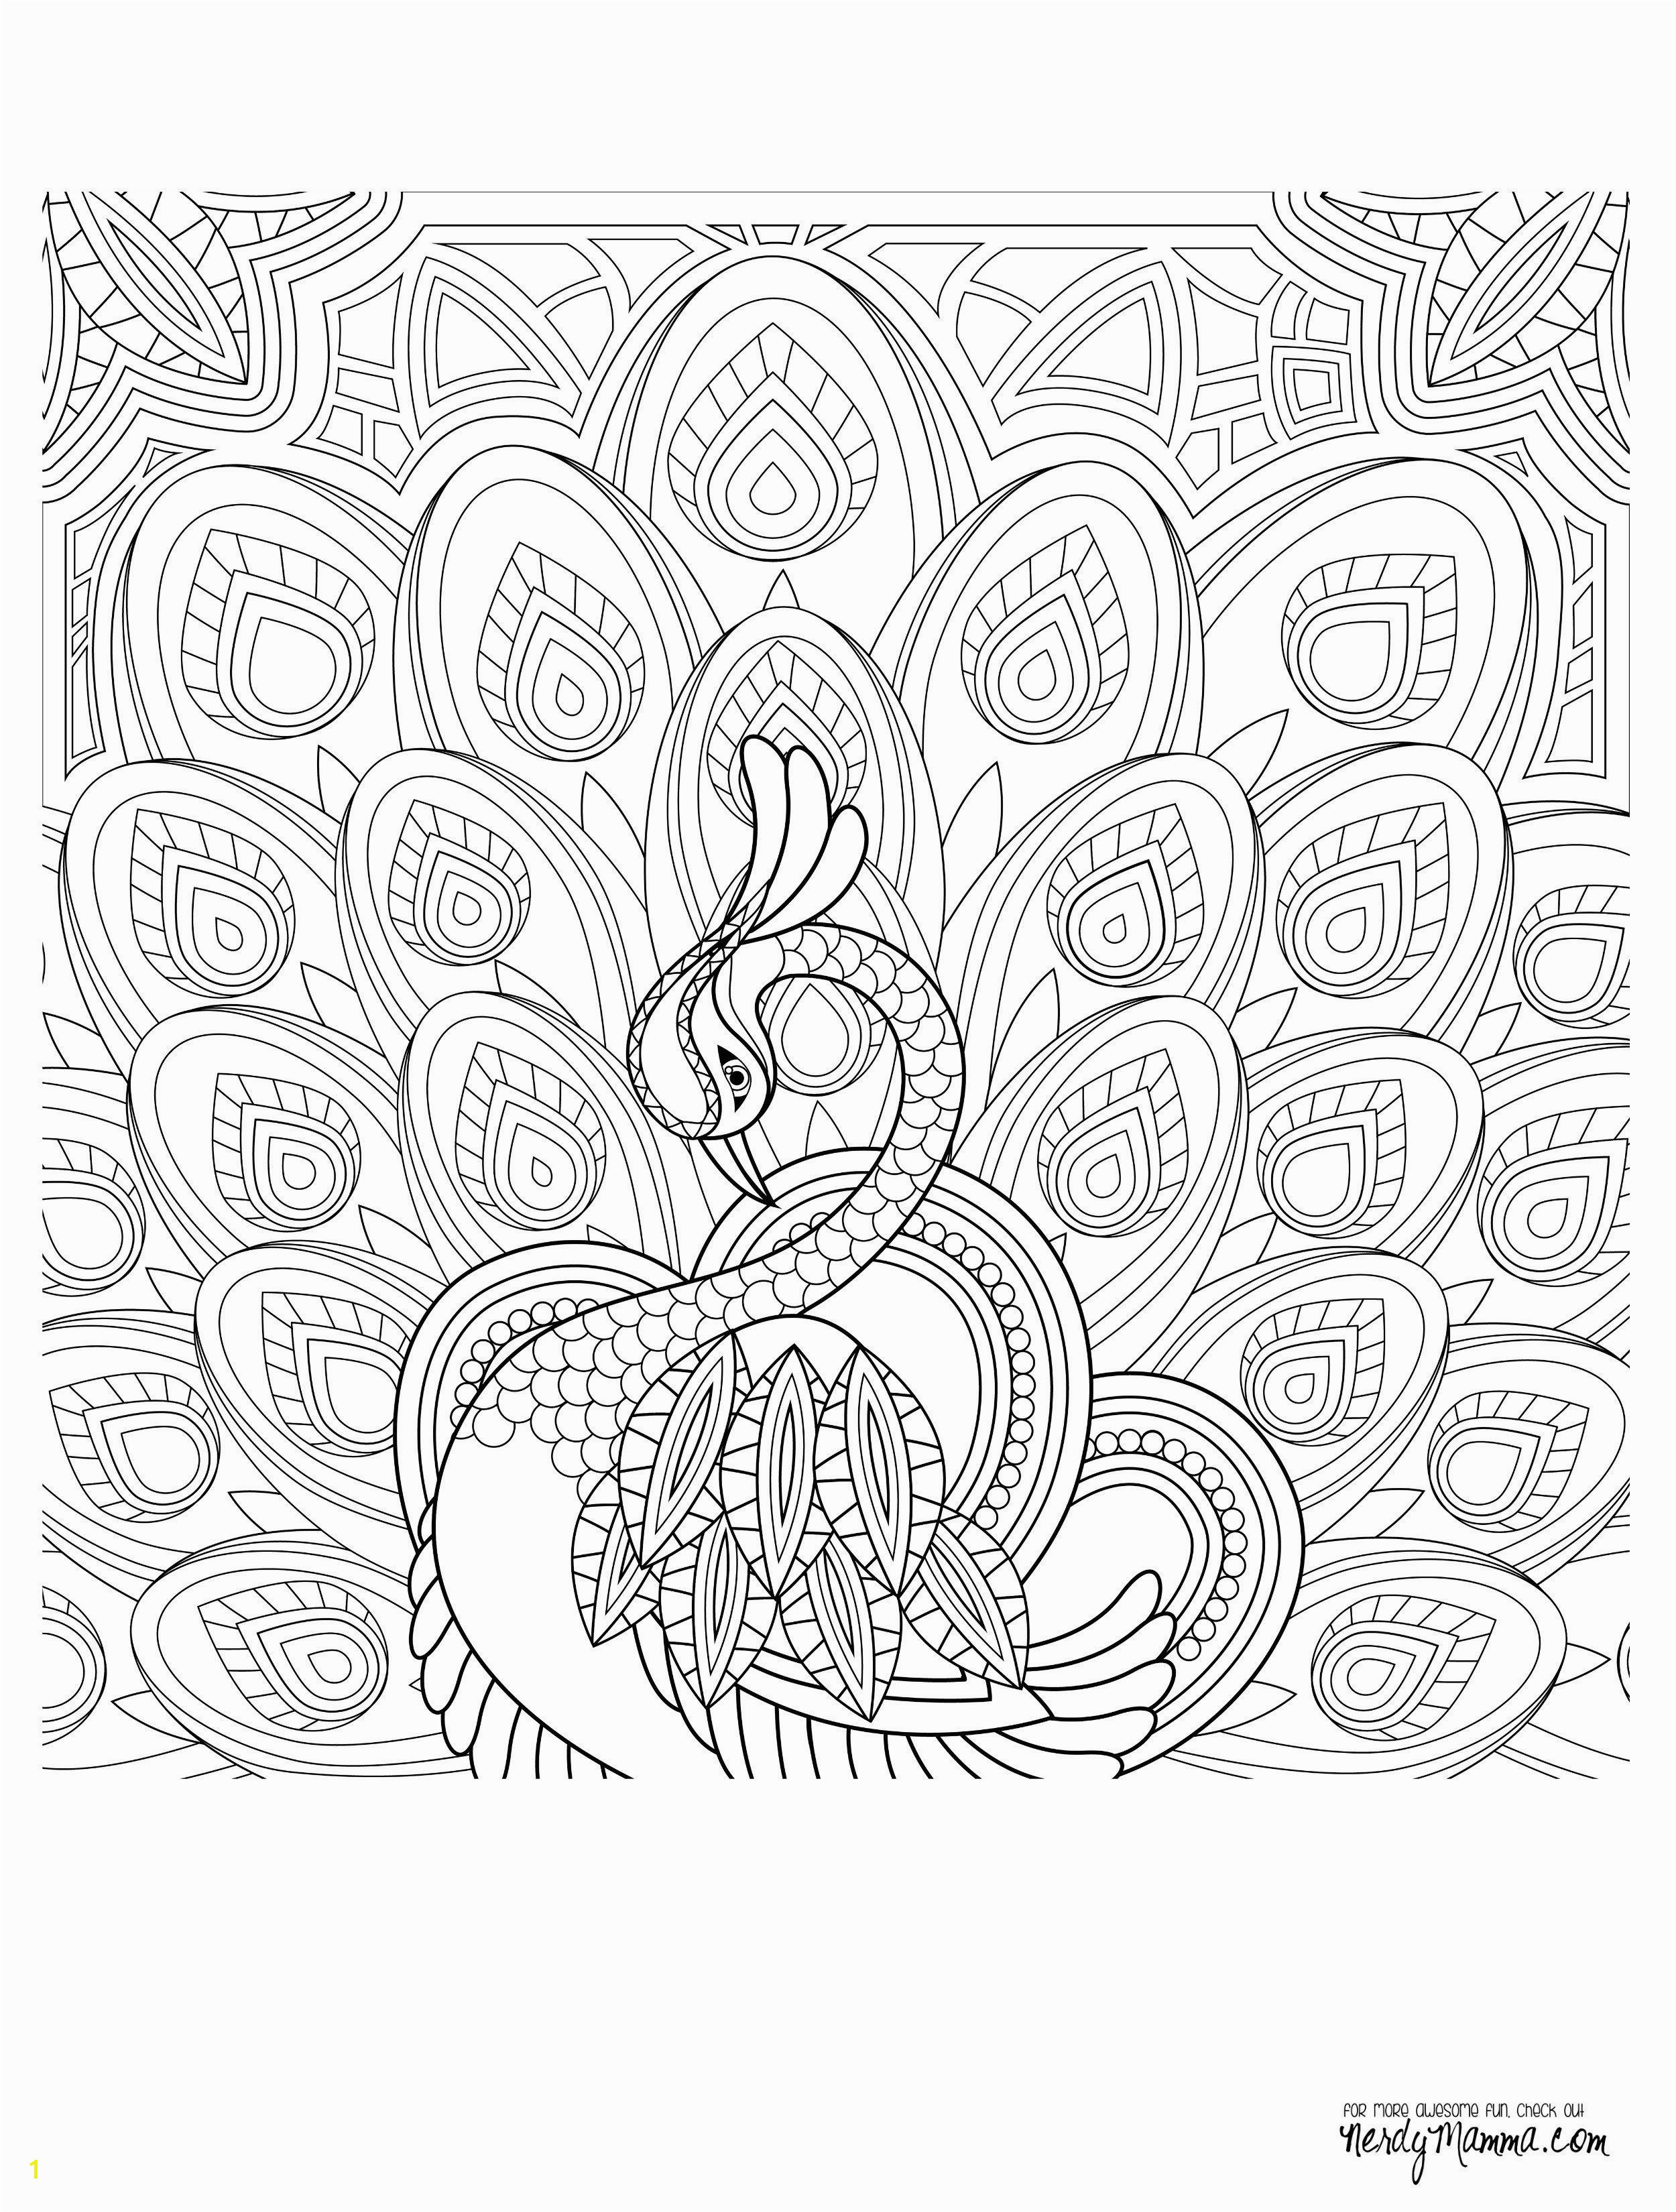 cute animal coloring pages for adults Coloring Page Elephant Cute Animals Coloring Pages Printable Coloring